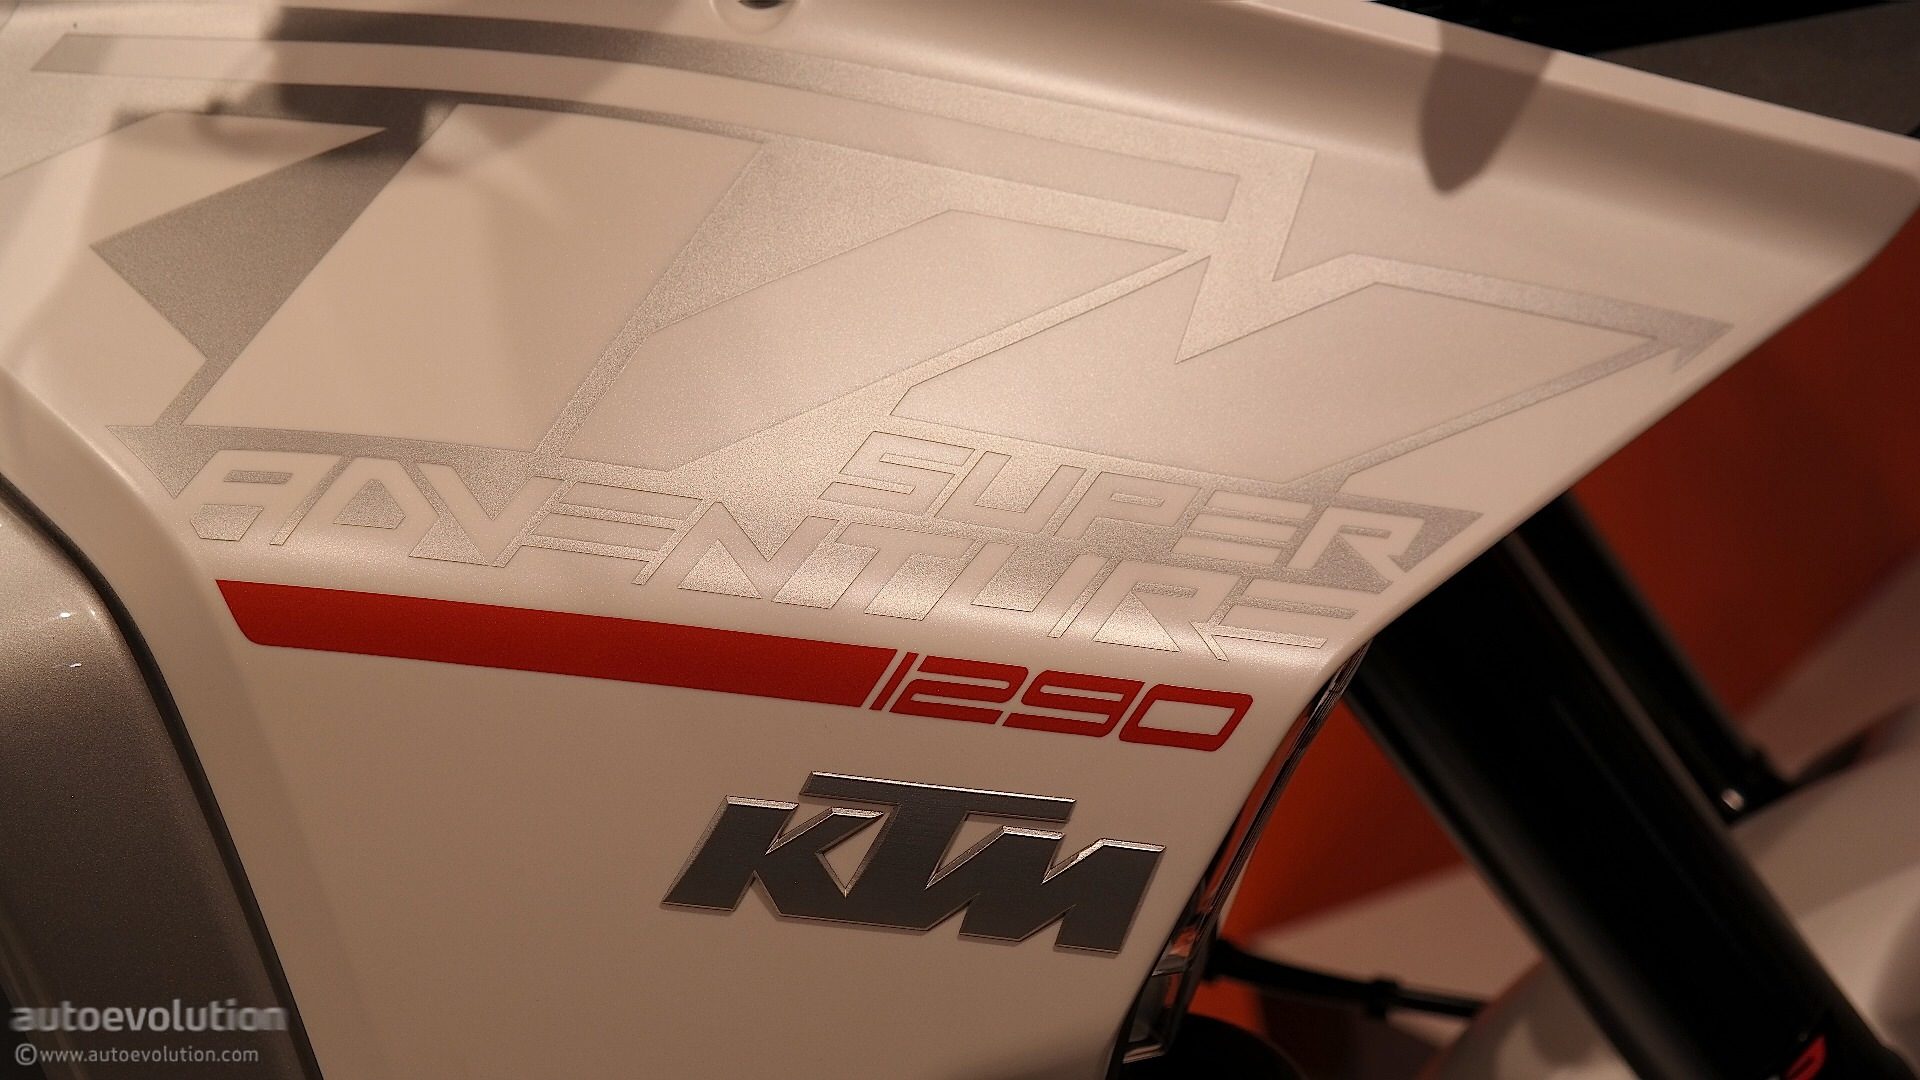 yes the 2015 ktm 1290 super adventure is one of the best